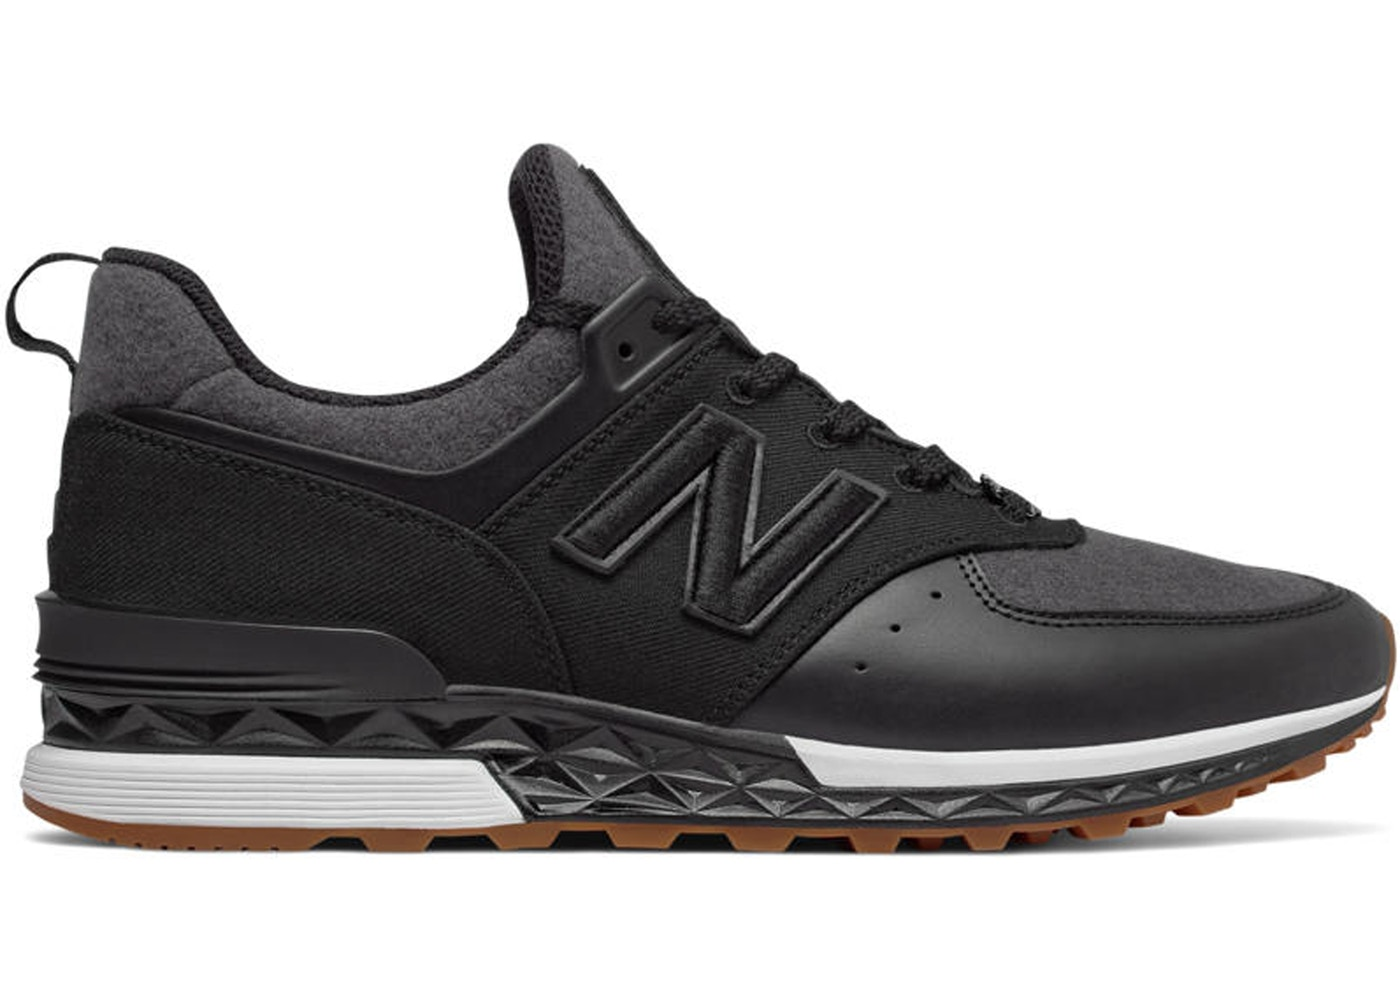 san francisco 2c4db e2c86 New Balance 574 Sport New Era Black Grey